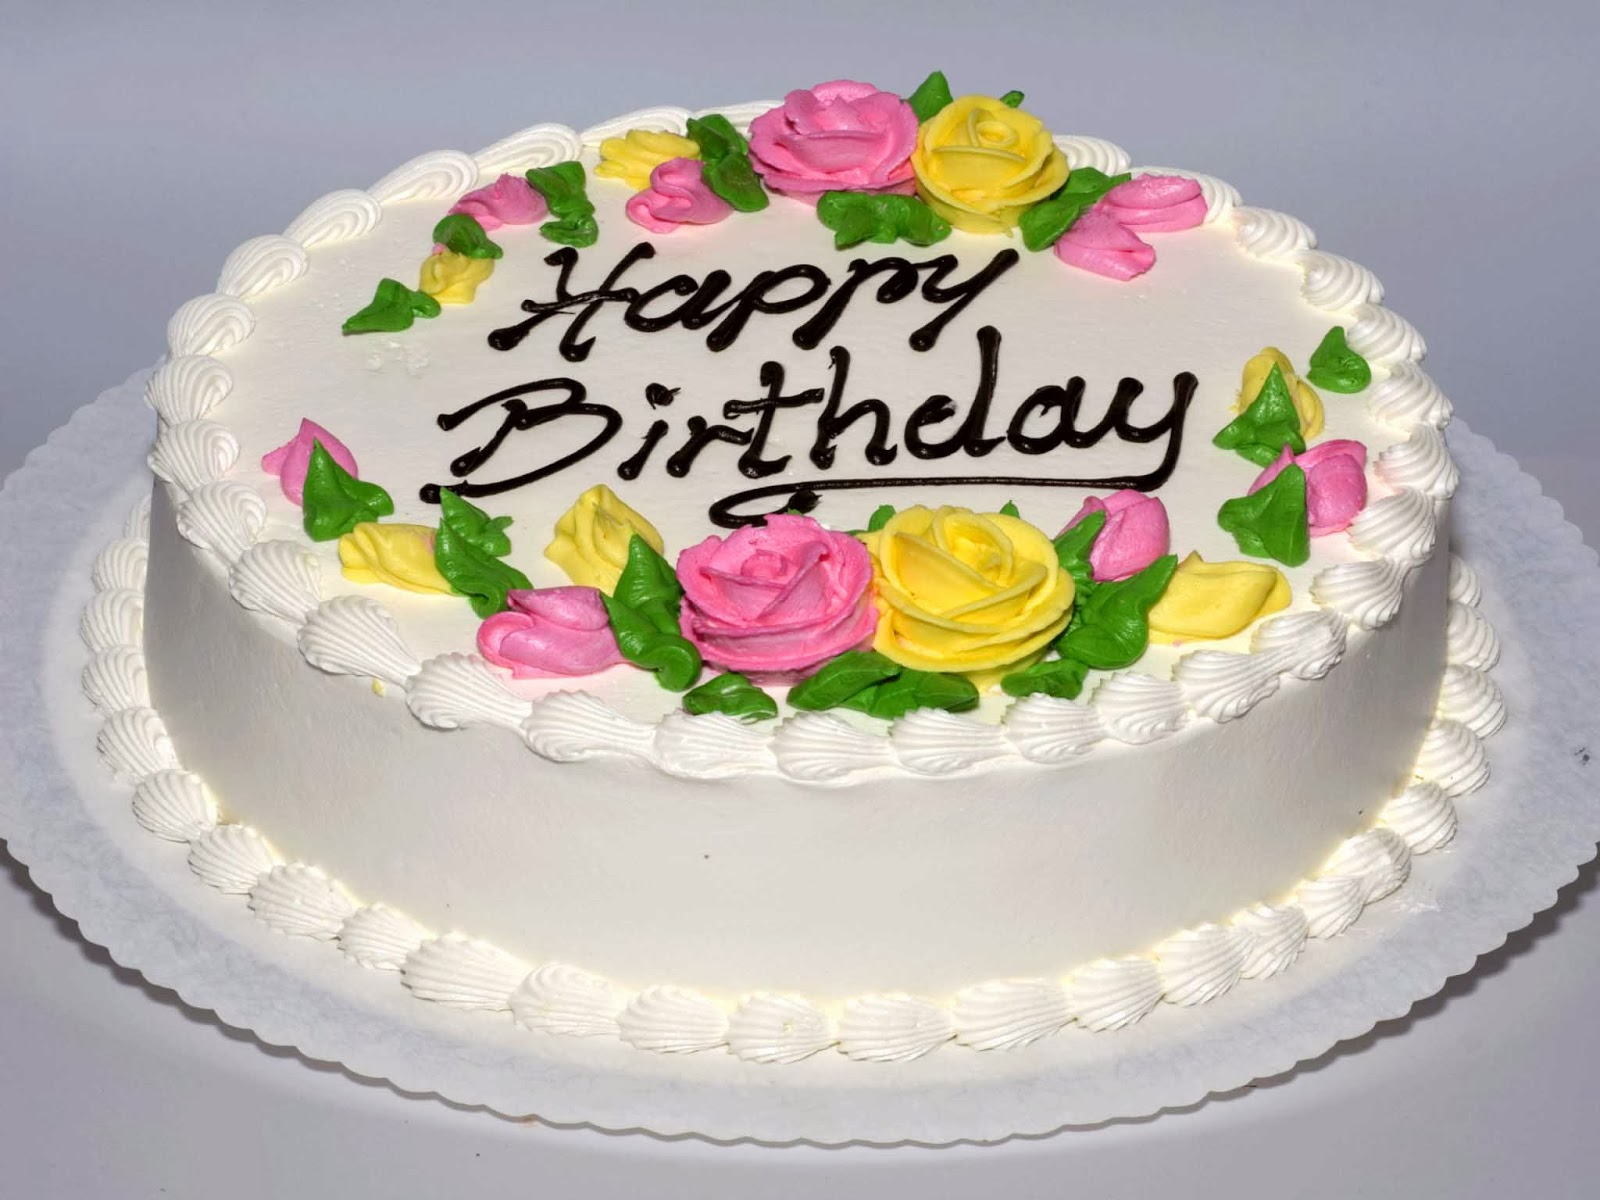 Birthday Cake Images To Download : Lovable Images: Happy Birthday Greetings free download ...